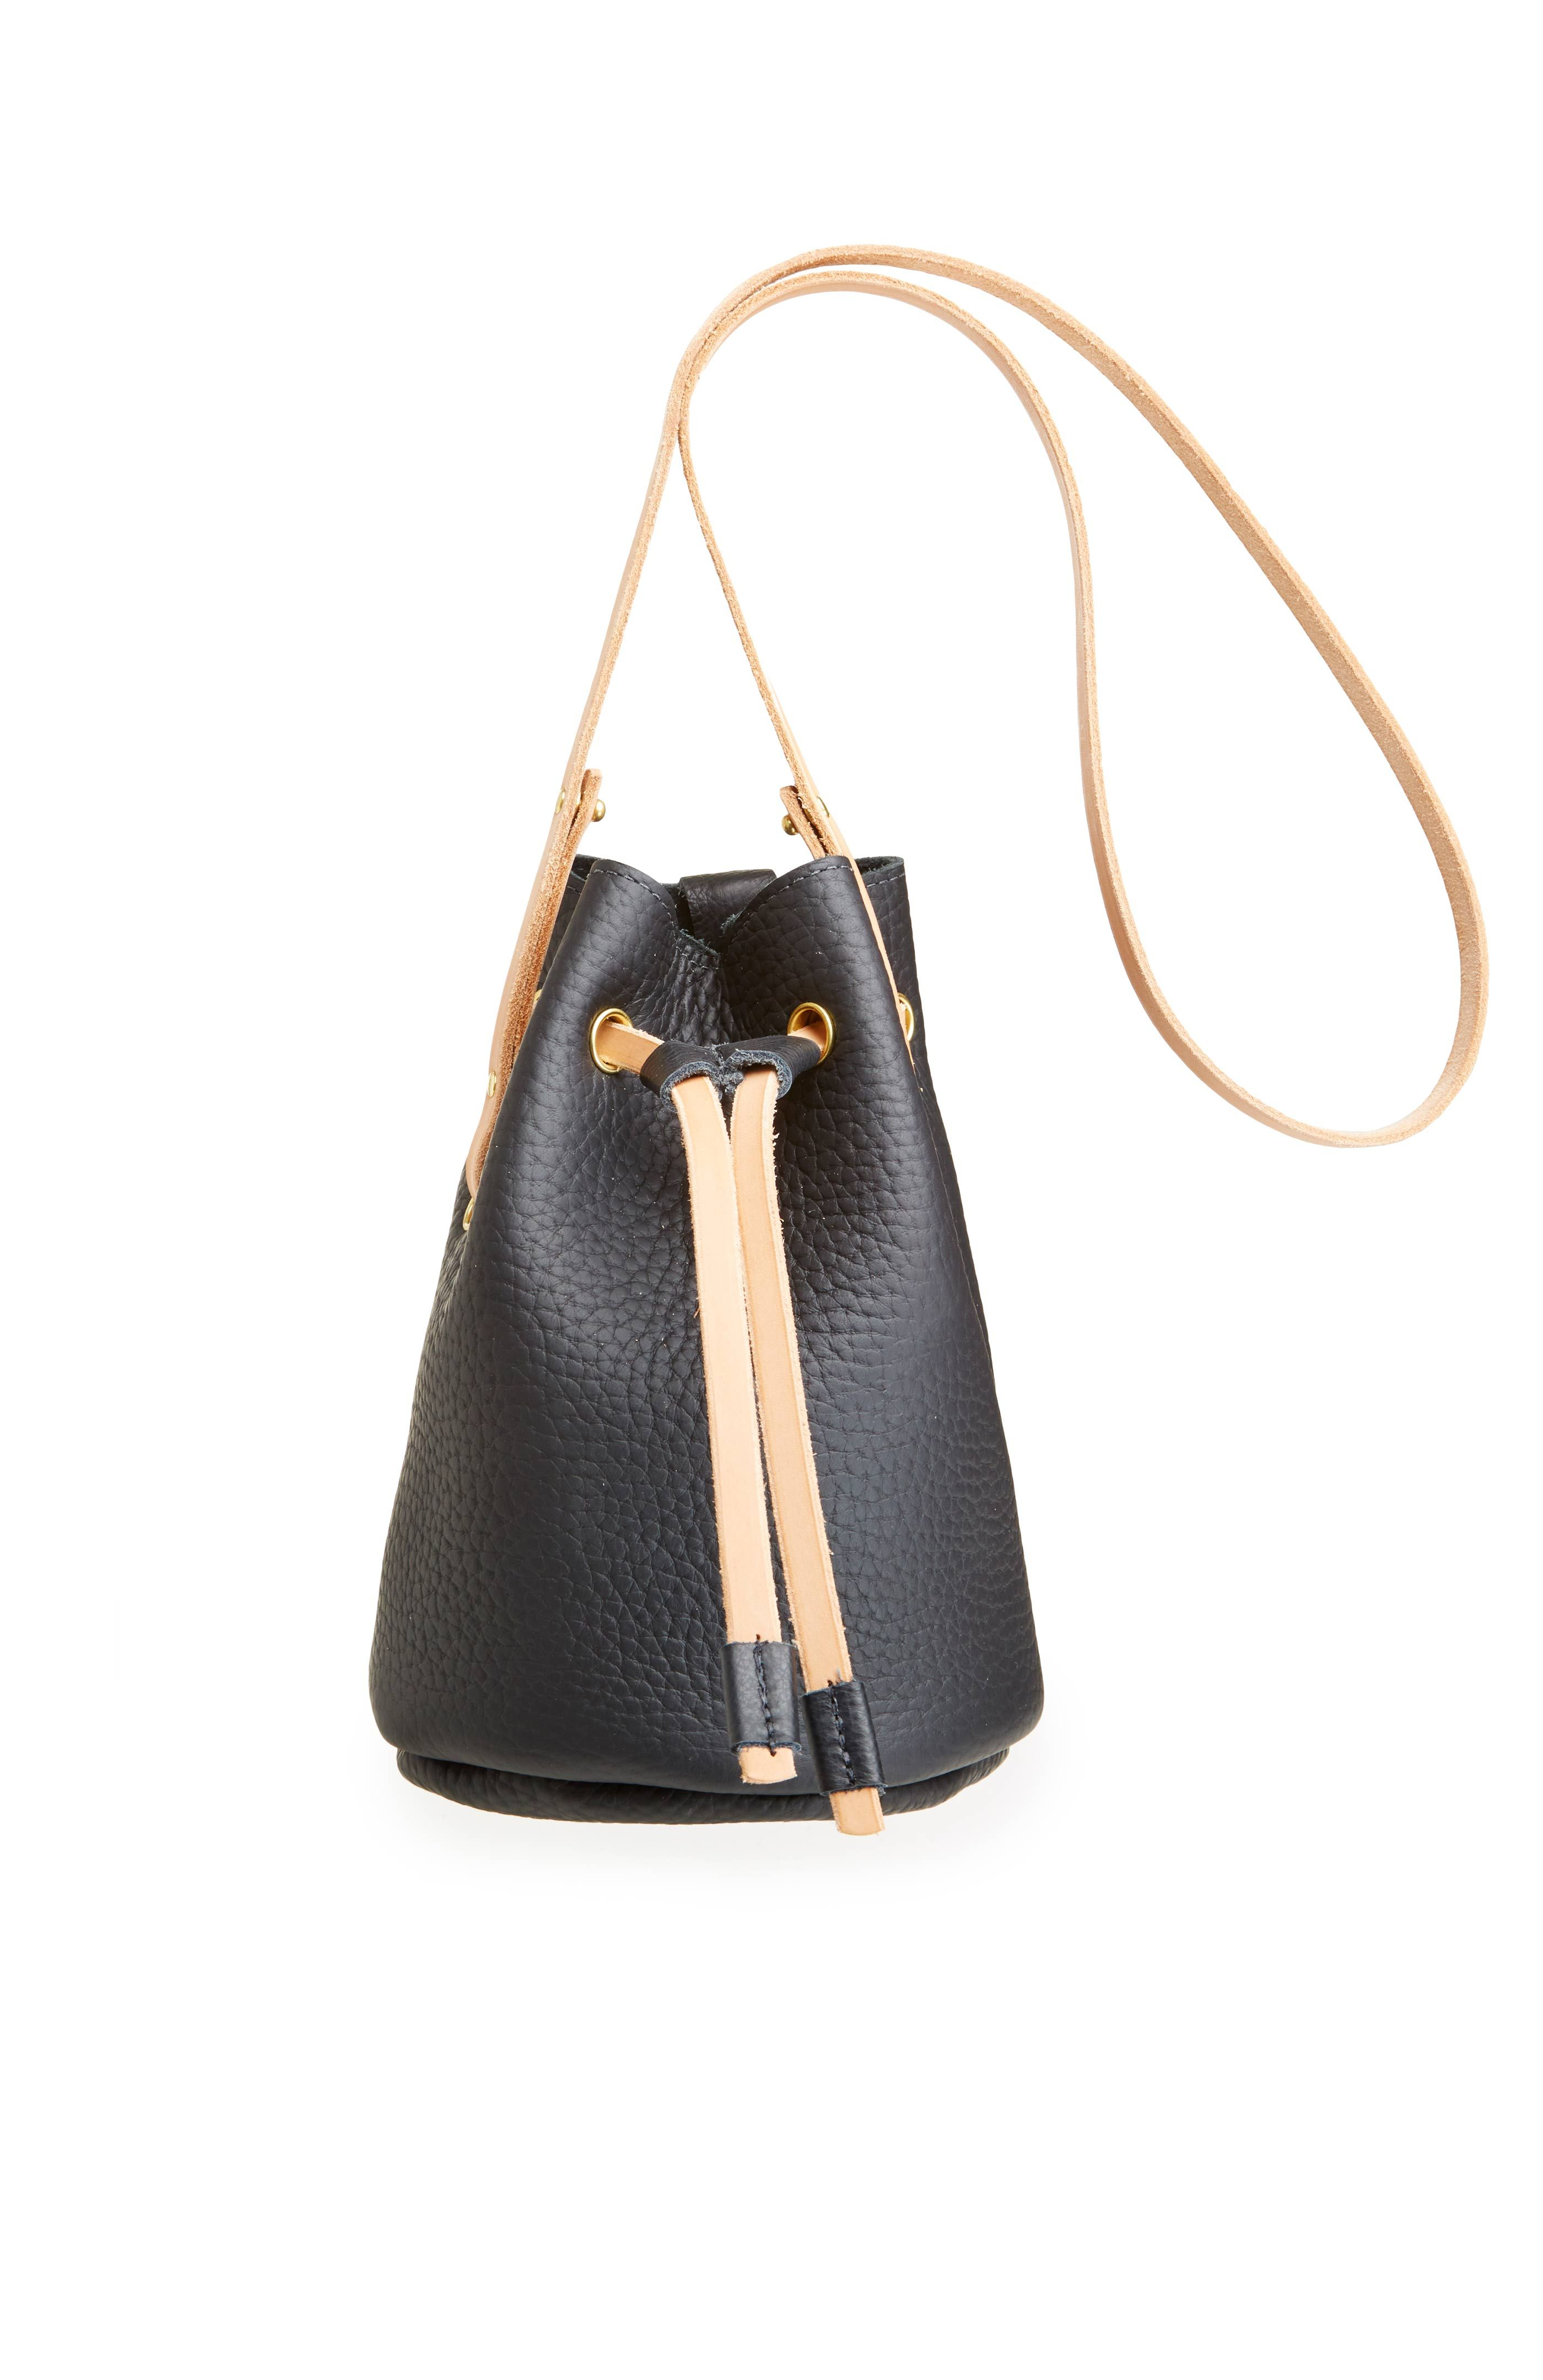 DailyLook: CHC Small Leather Bucket Bag in Black